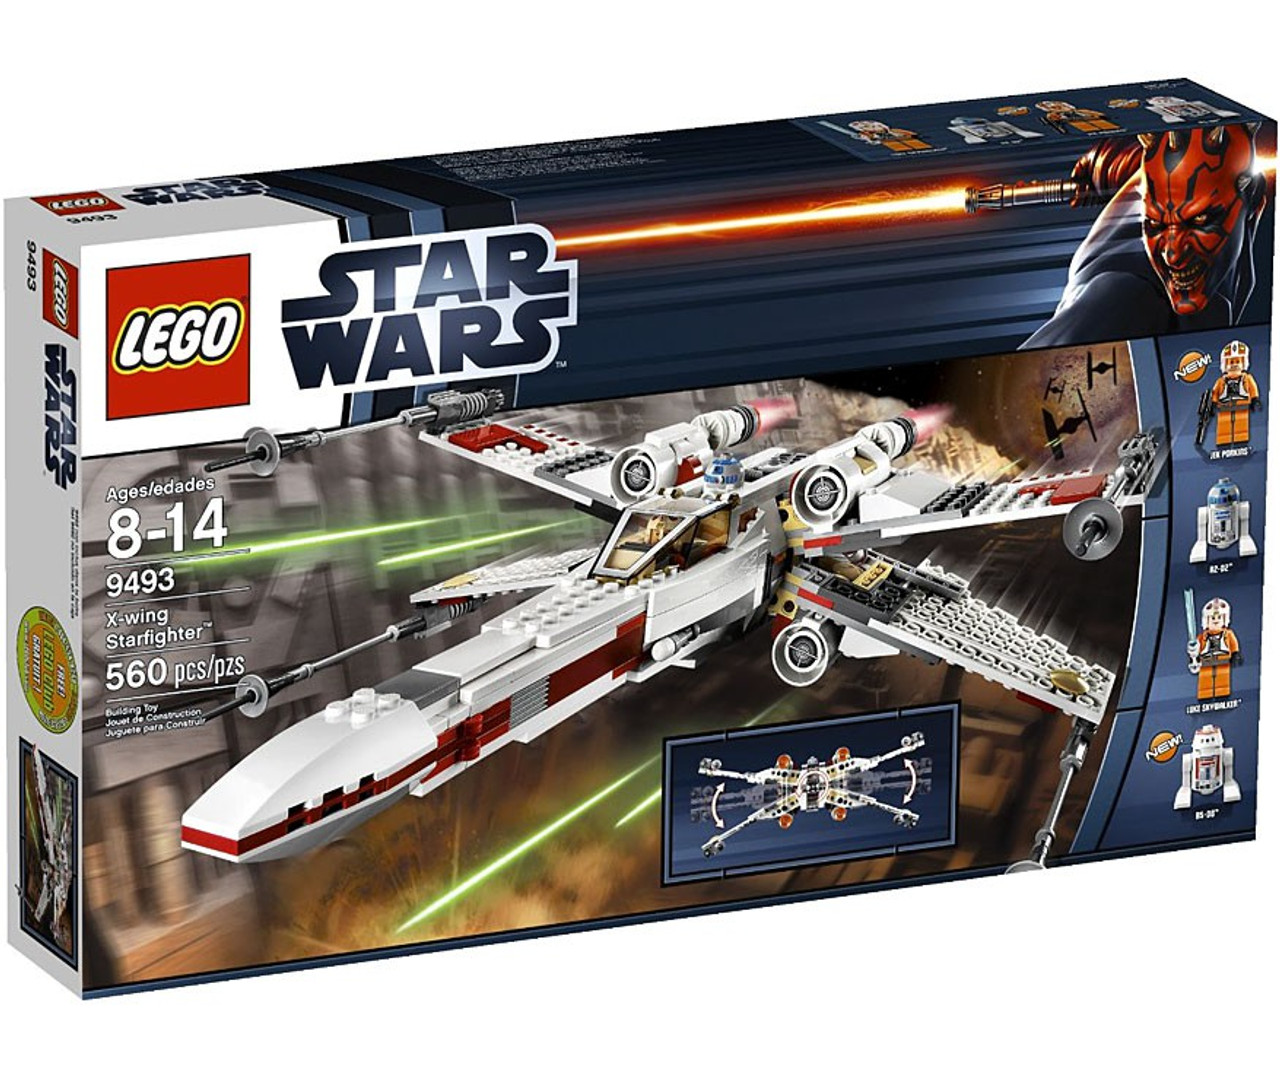 Lego Star Wars X Wing Starfighter: LEGO Star Wars A New Hope X-Wing Starfighter Set 9493